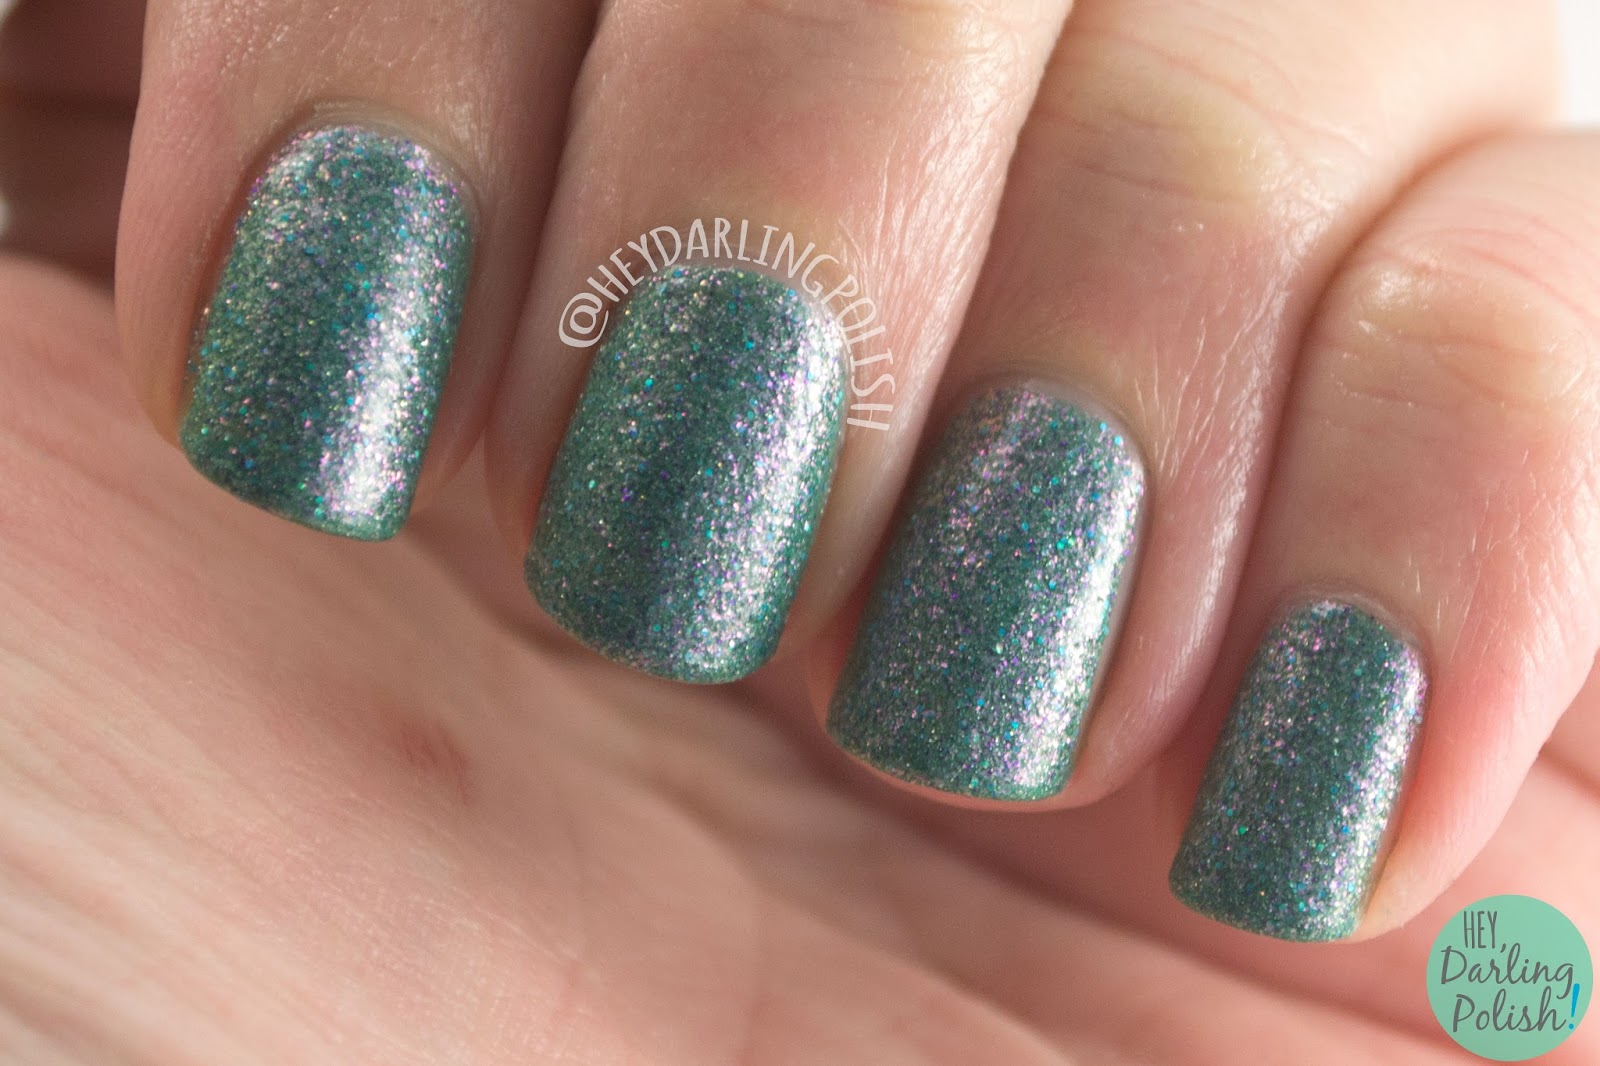 nails, nail polish, indie polish, kbshimmer, hey darling polish, teal another tail, swatch, teal, shimmer